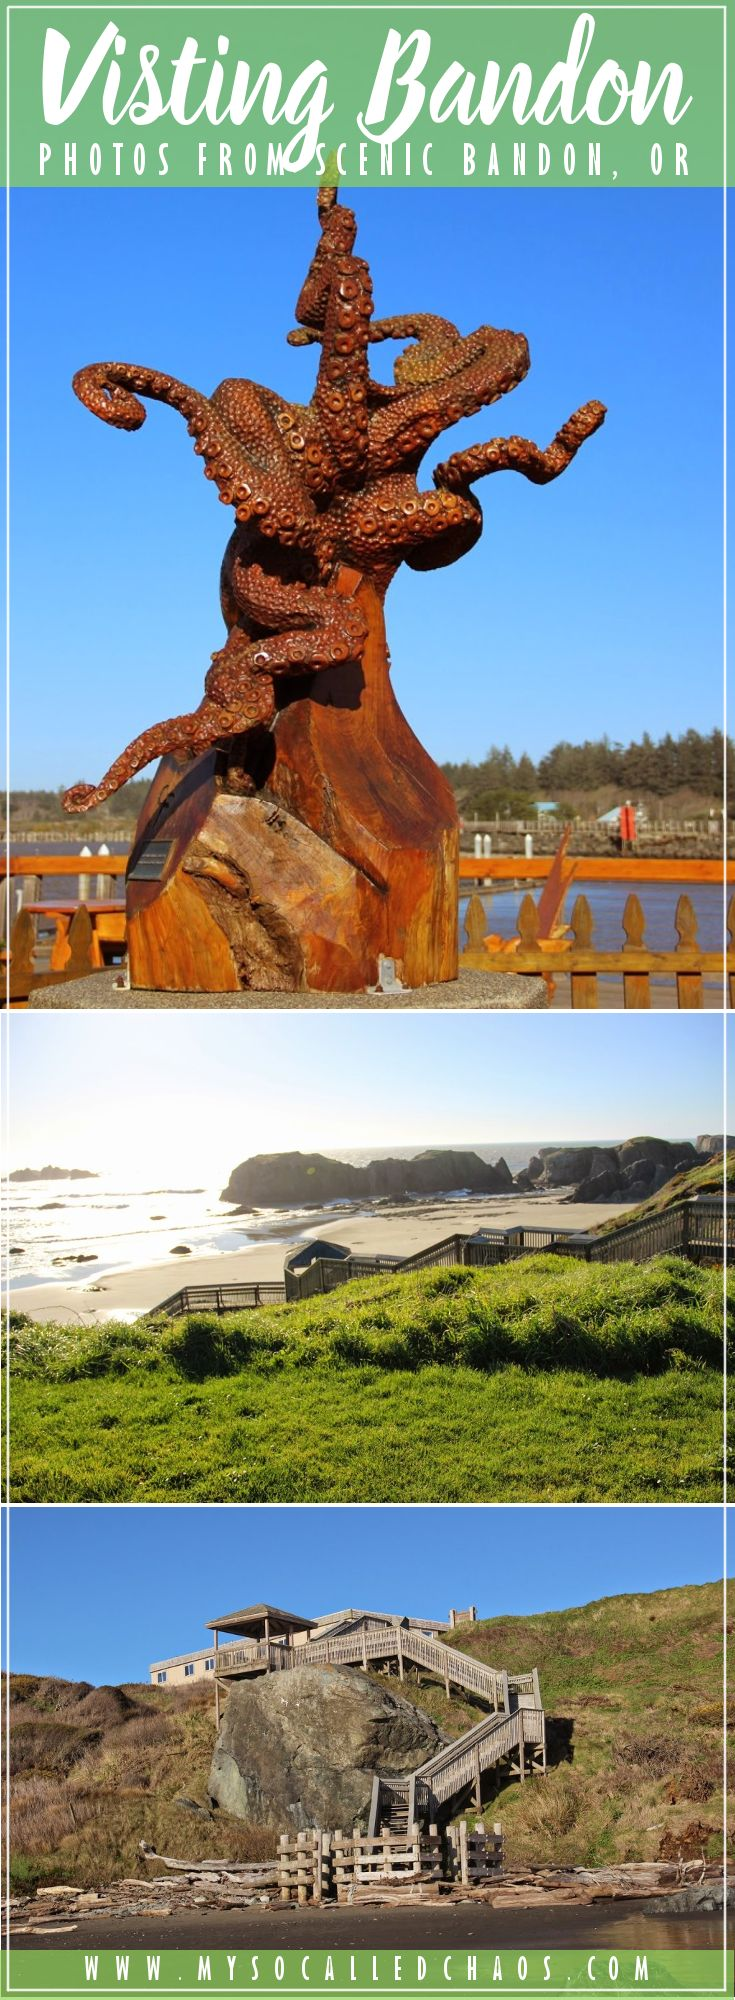 Photos from Scenic Bandon OR Oregon Photo